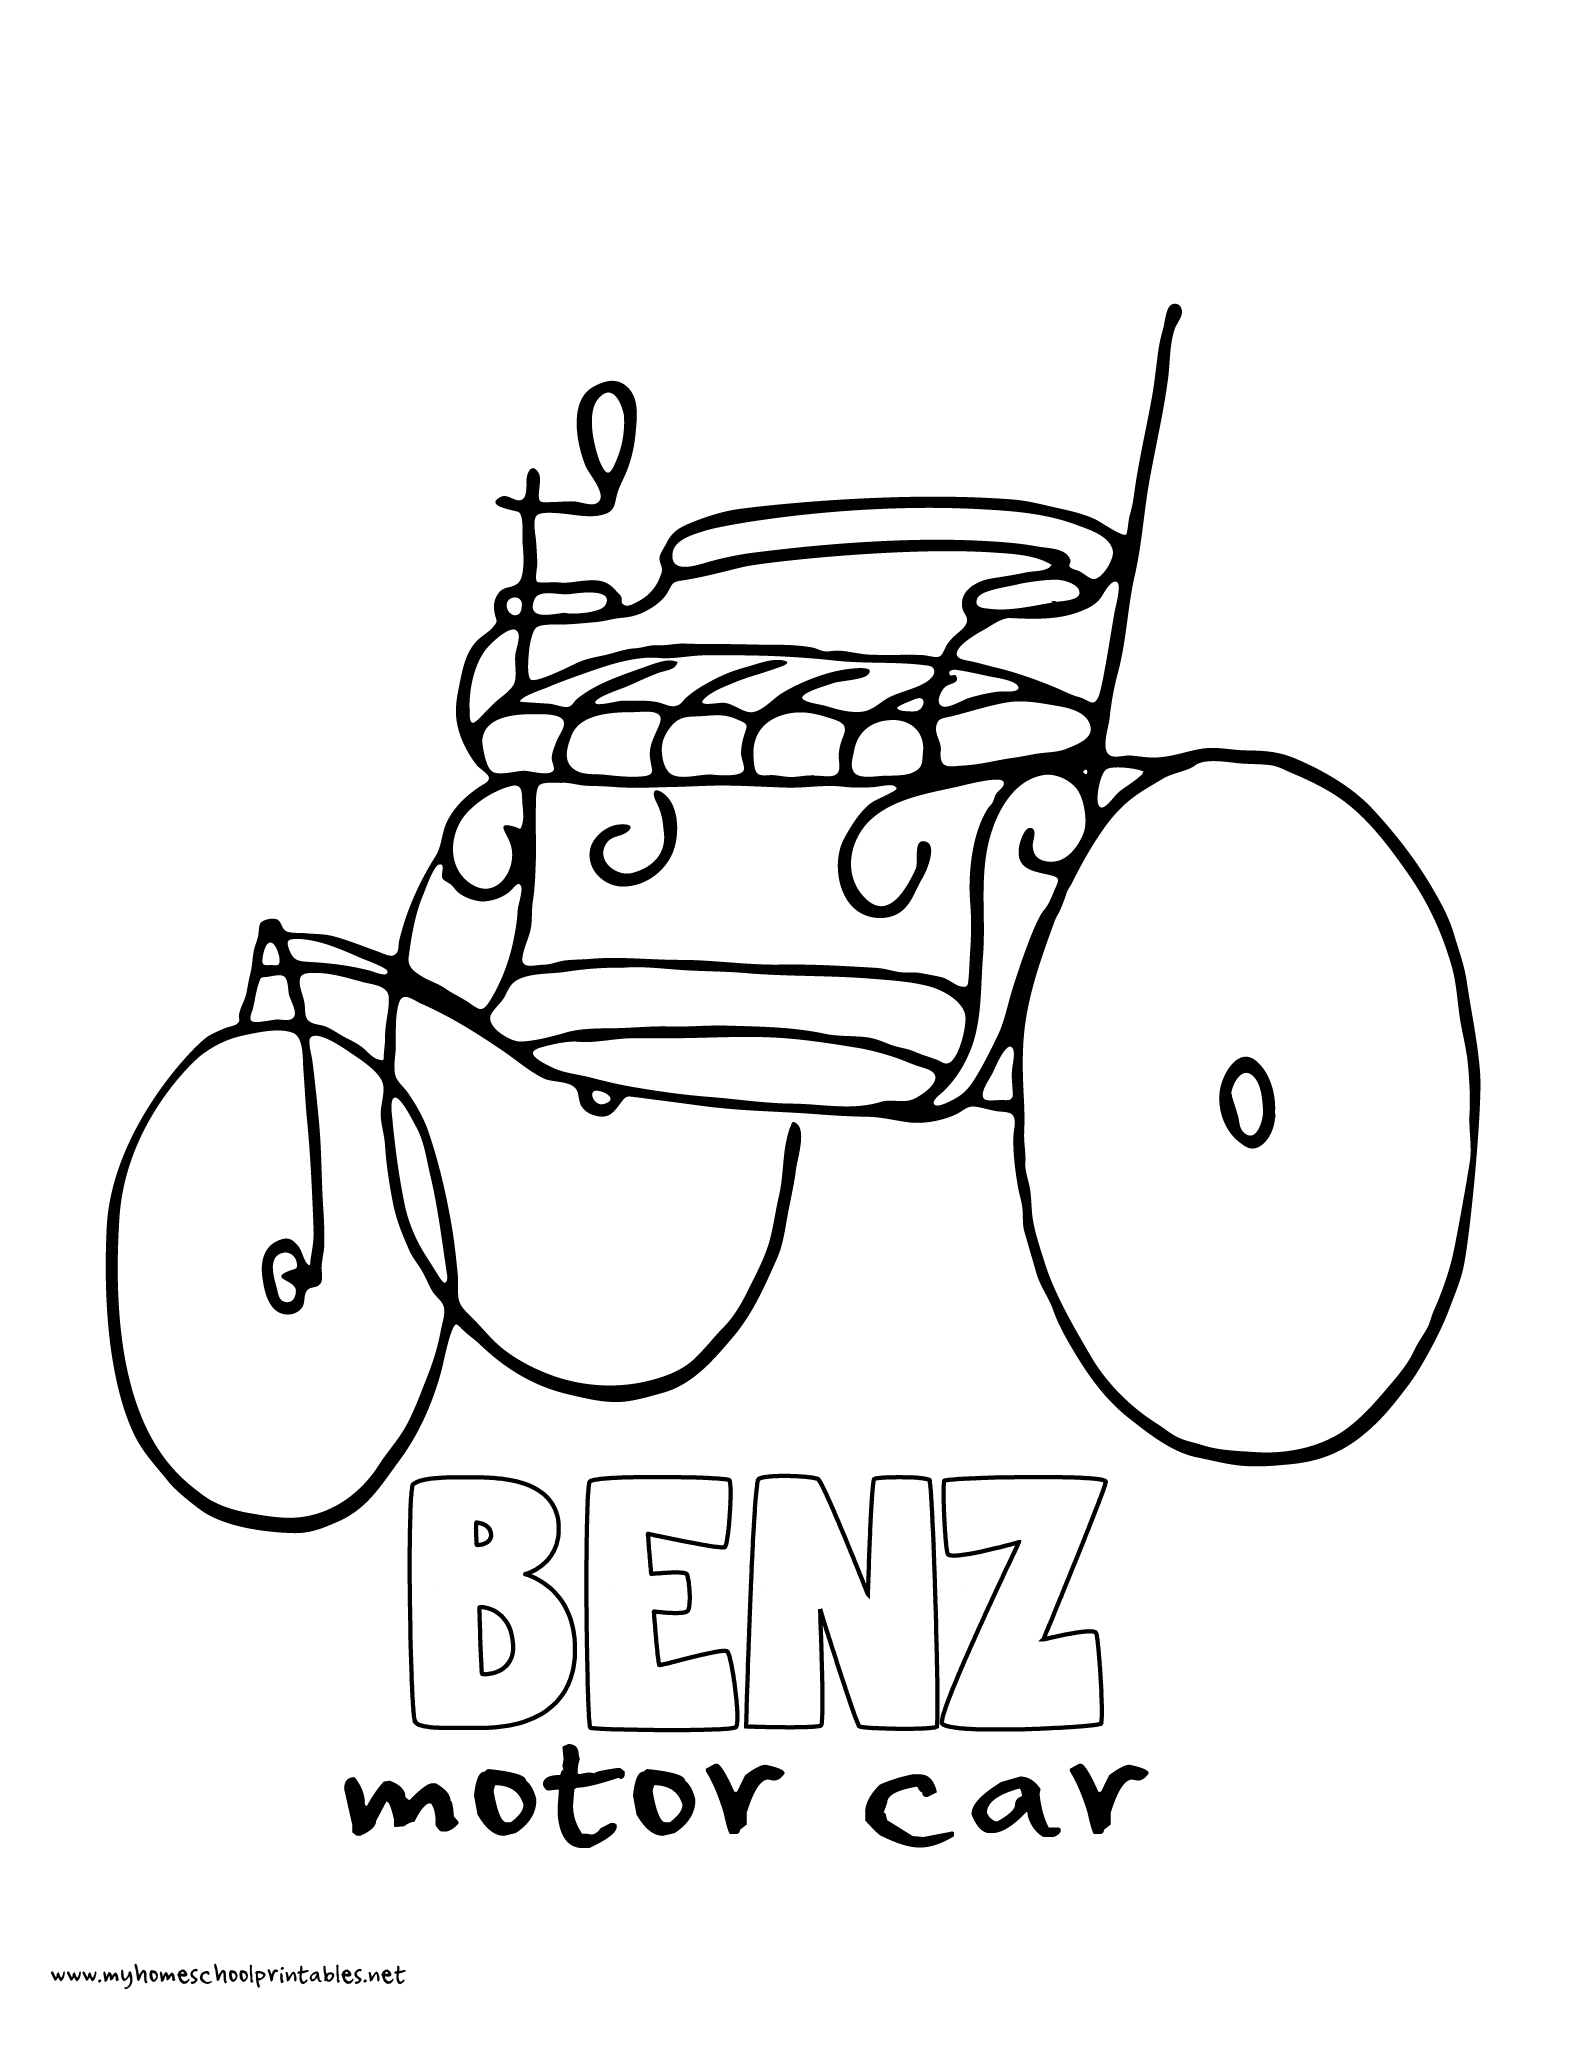 World History Coloring Pages Printables Karl Benz Motorwagen Automobile